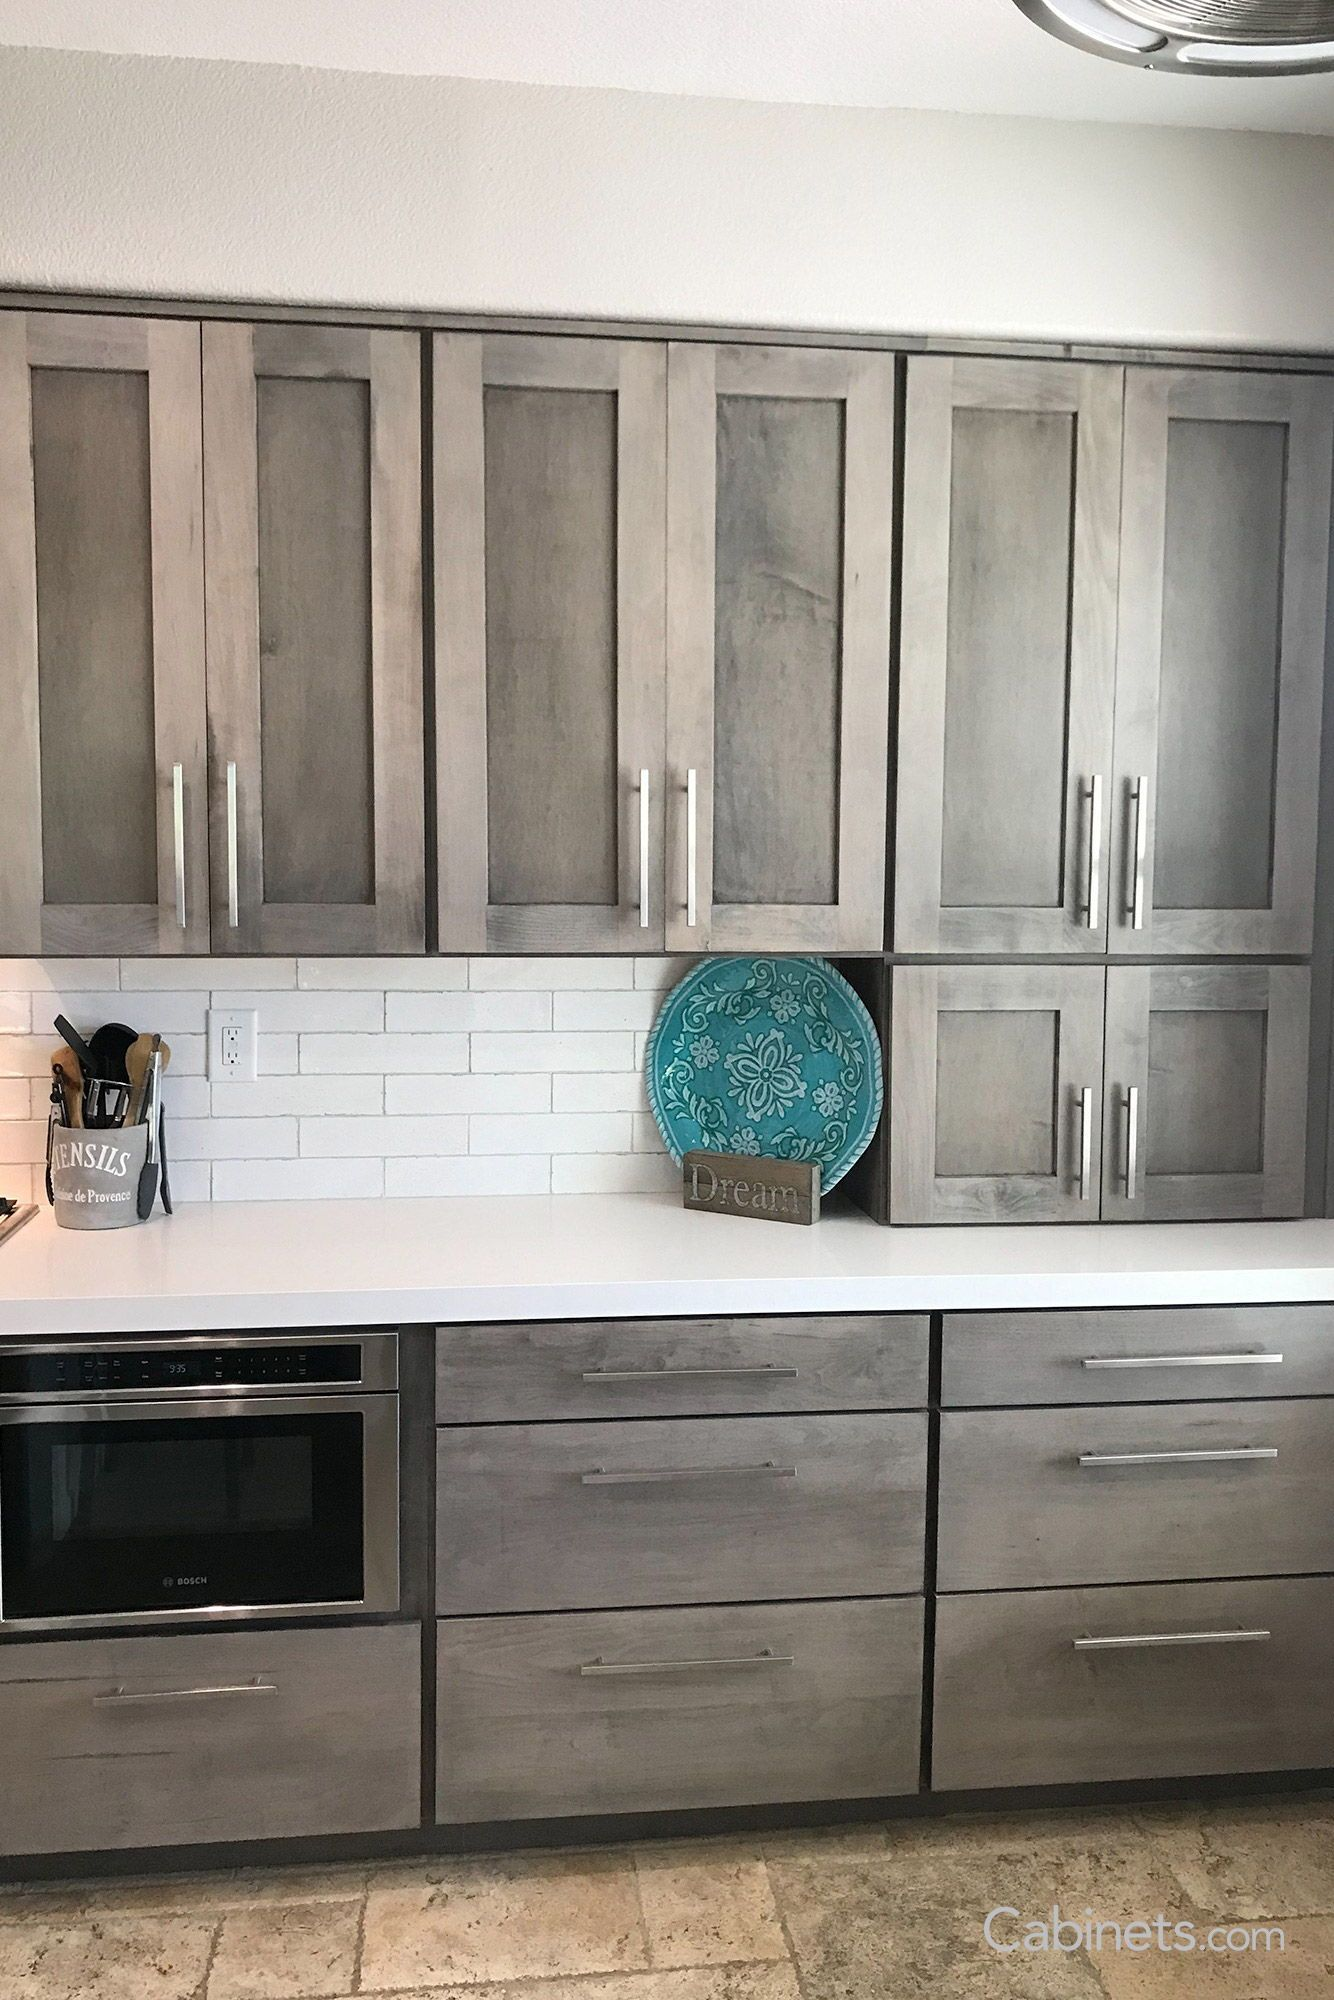 Looking For A Way To Hide Your Appliances But With Style Incorporate A Wall Tower Cabinet Tha Gray Stained Cabinets Kitchen Cabinet Styles Staining Cabinets